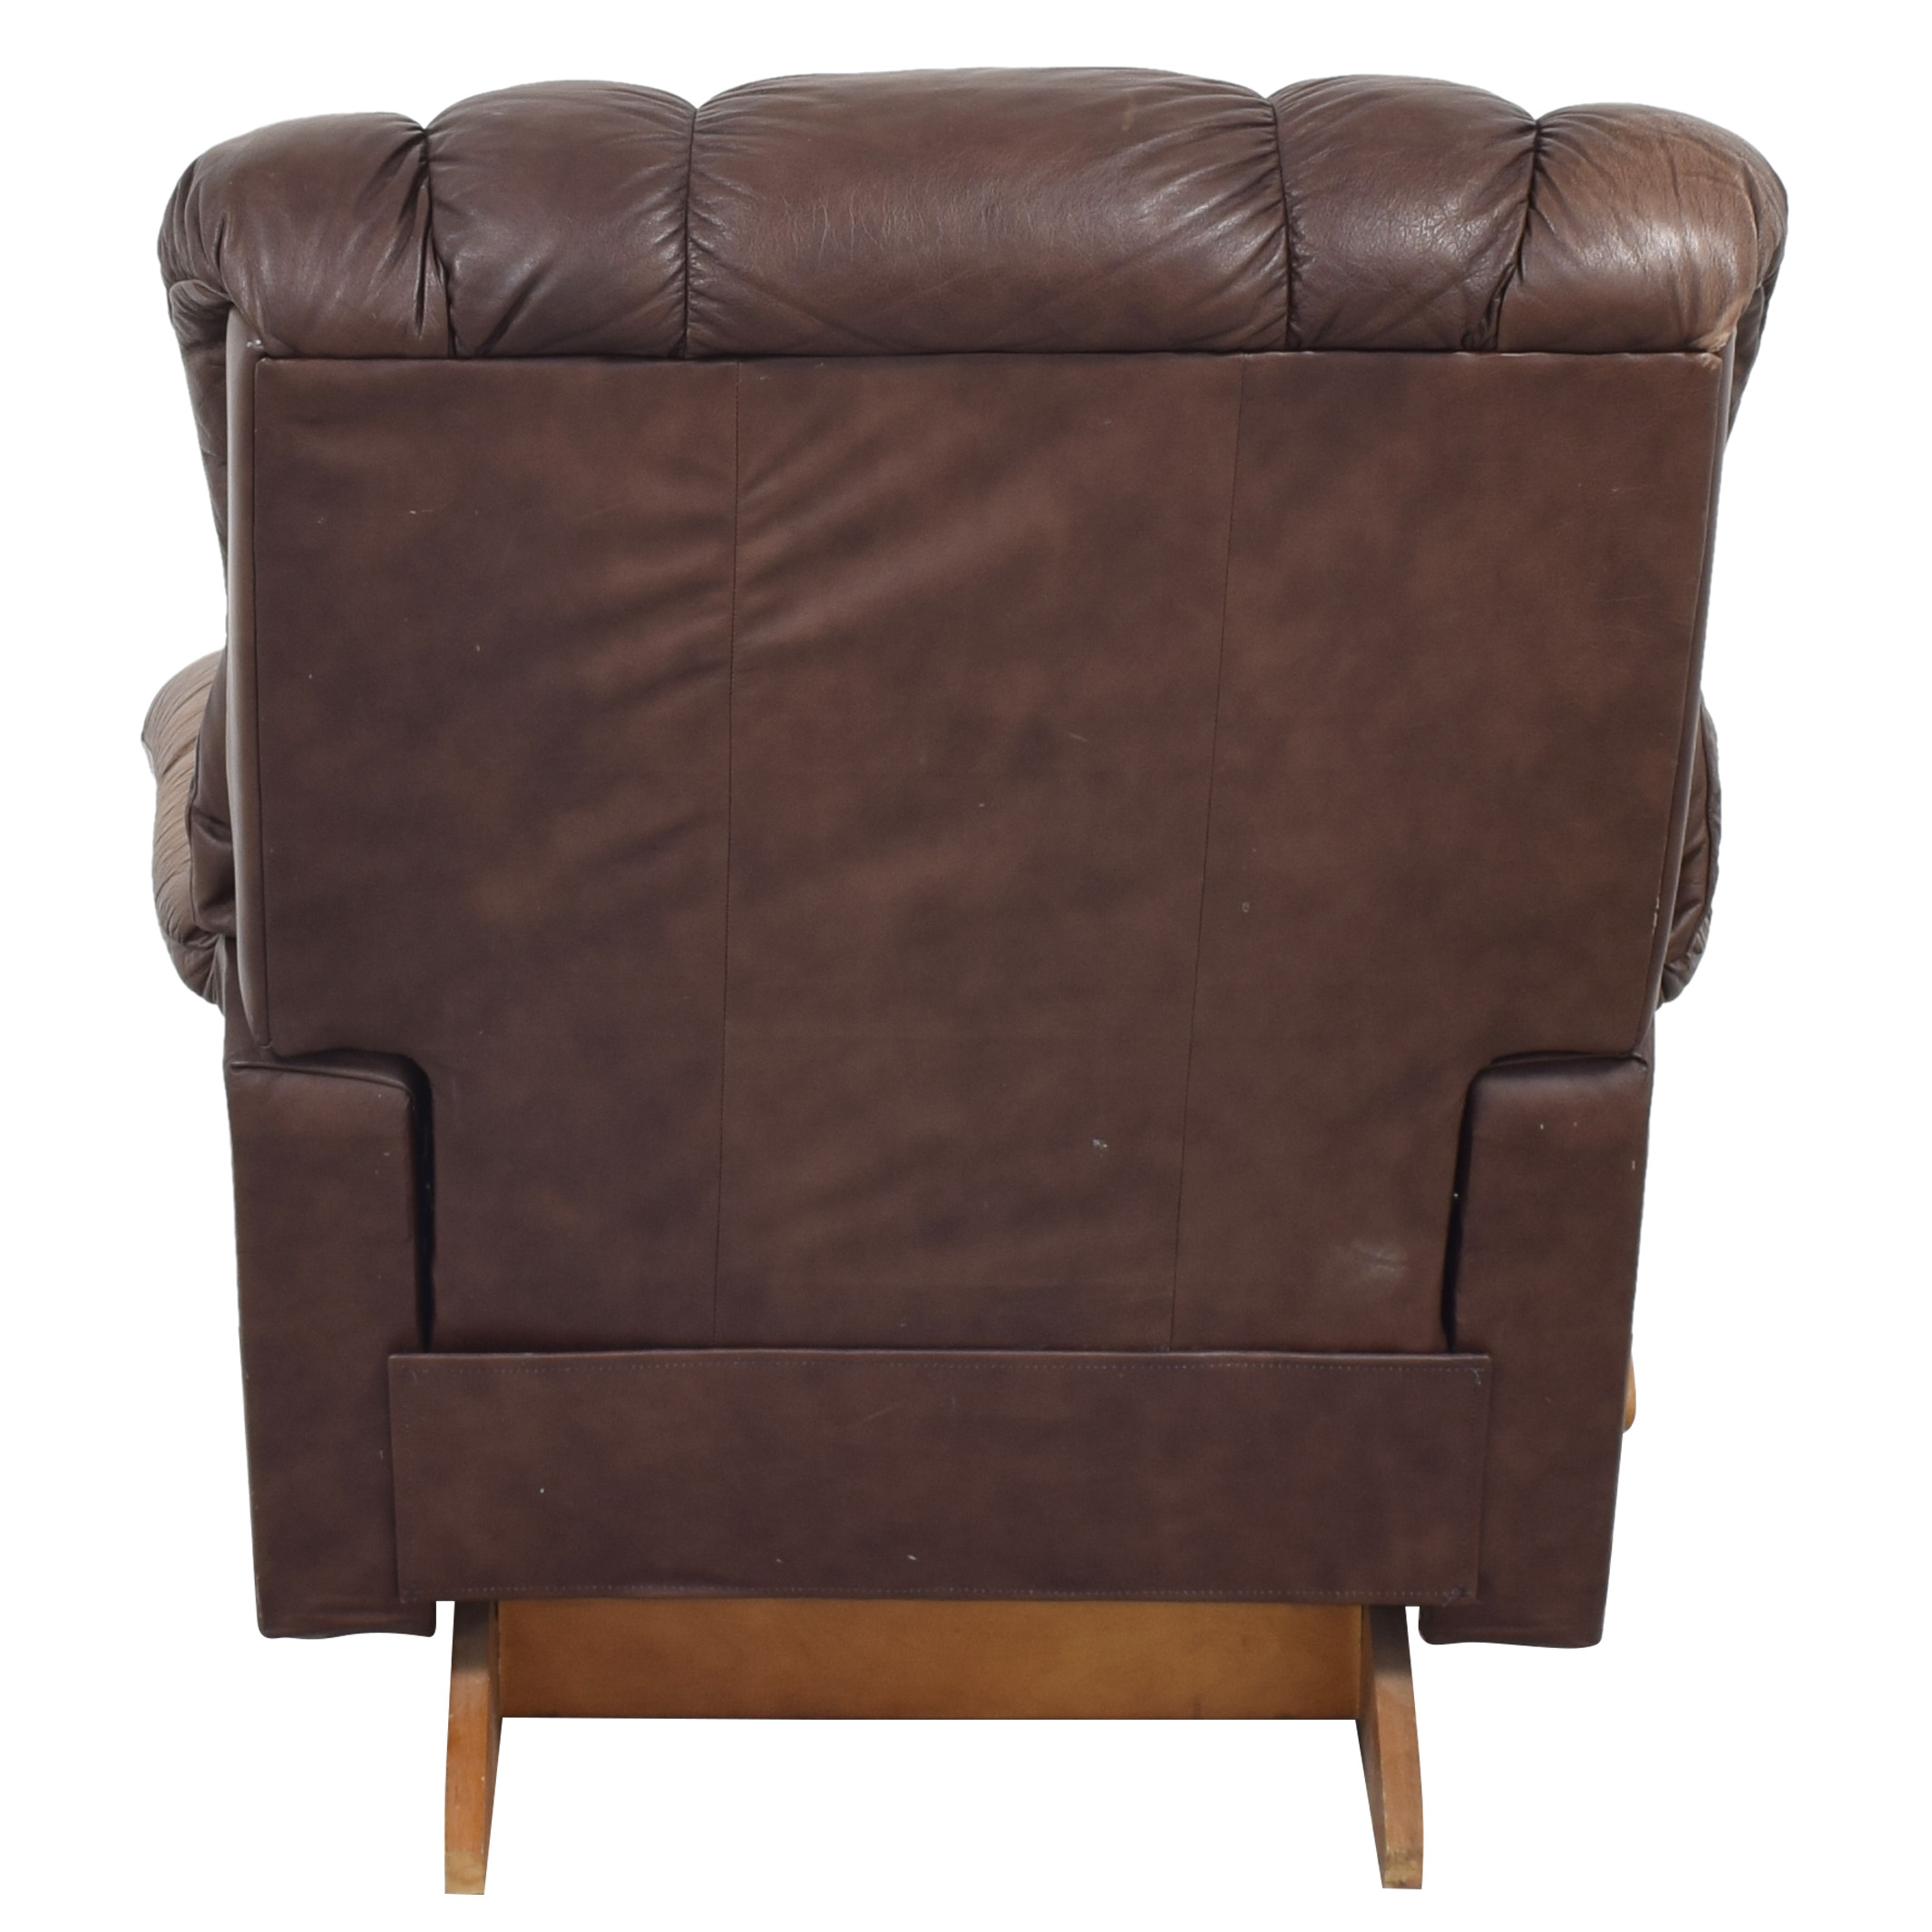 La-Z-Boy La-Z Boy Recliner brown